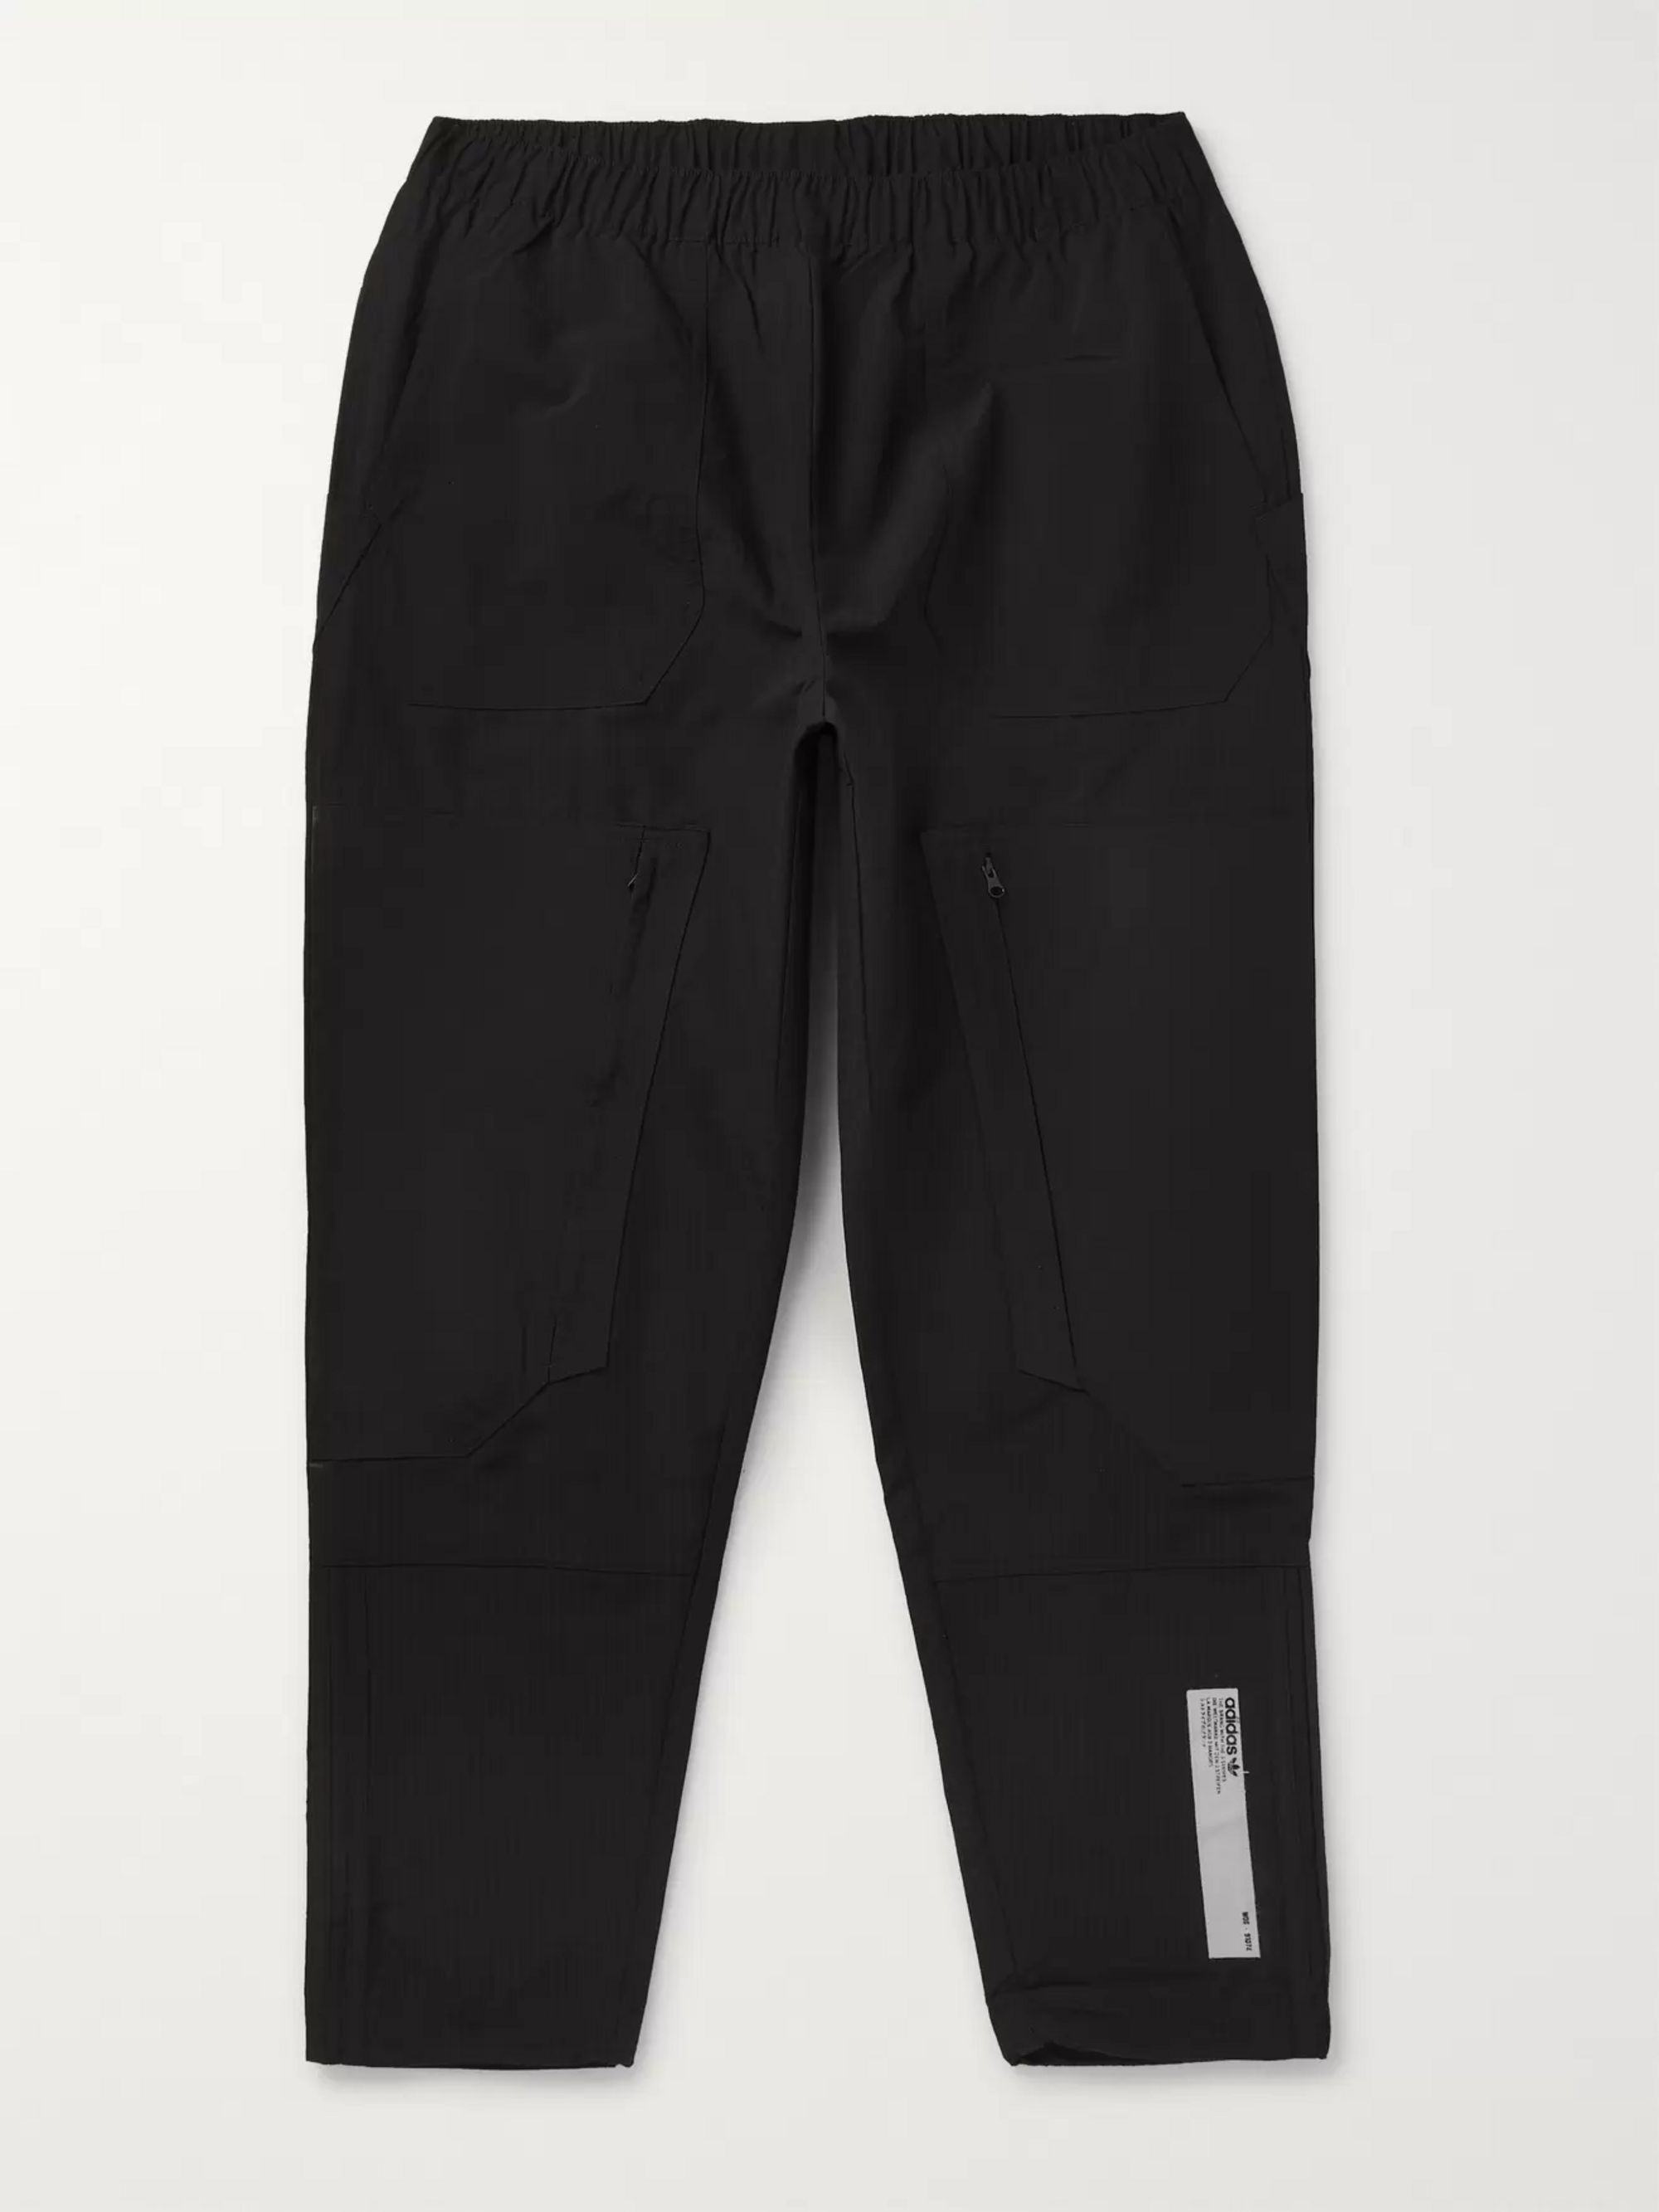 NMD Two Tone Cotton Blend Shell Cargo Trousers